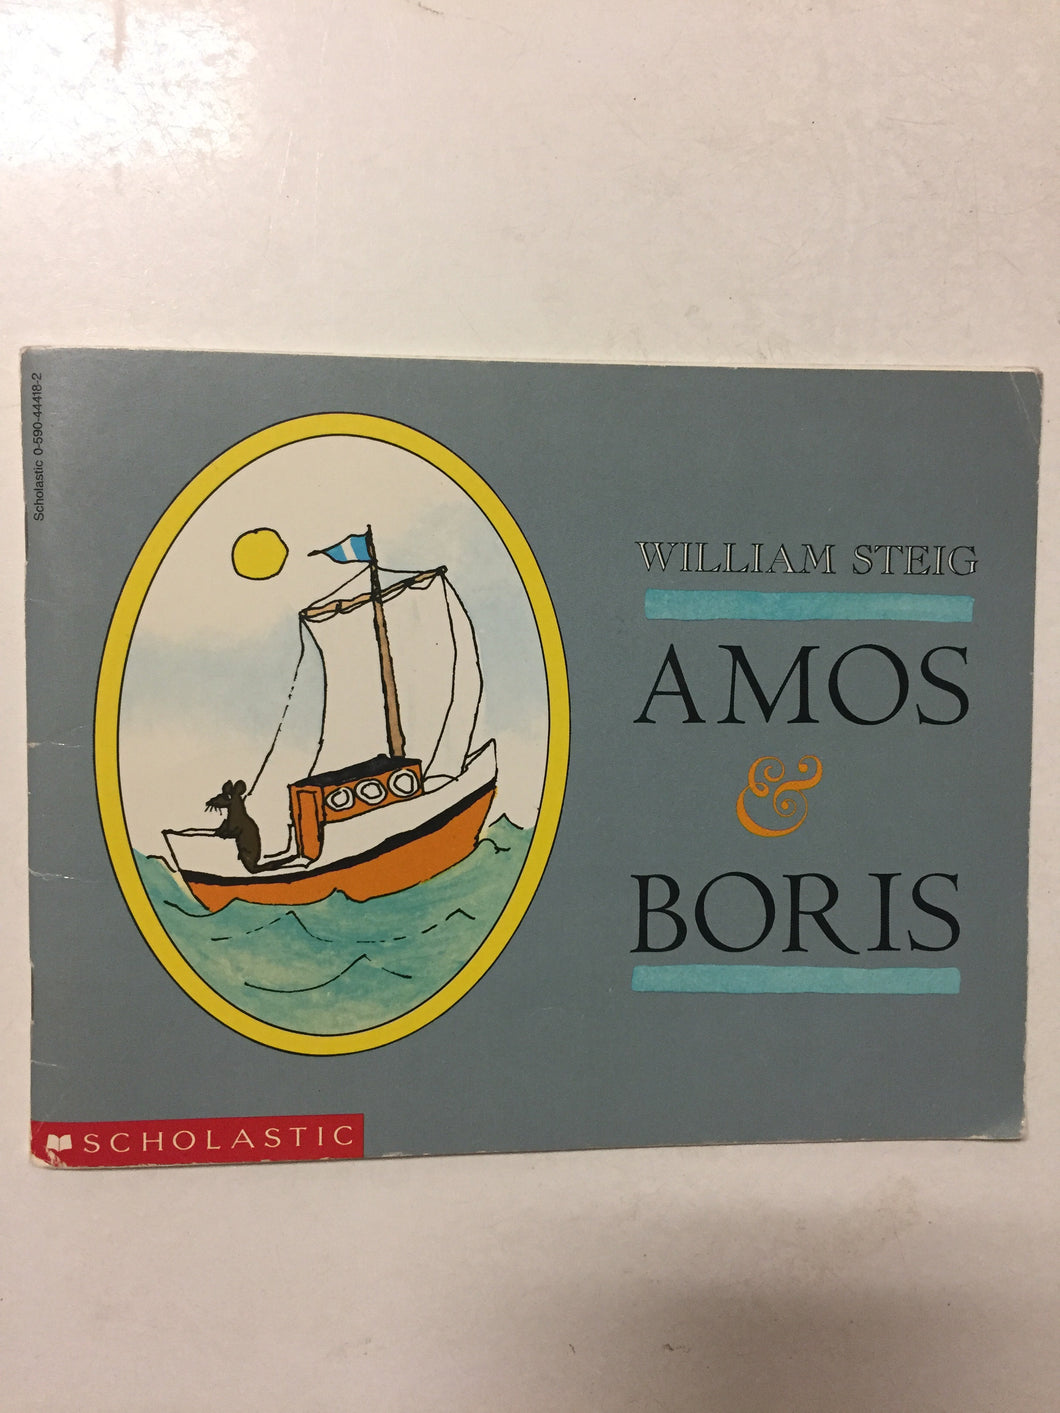 Amos & Boris - Slick Cat Books